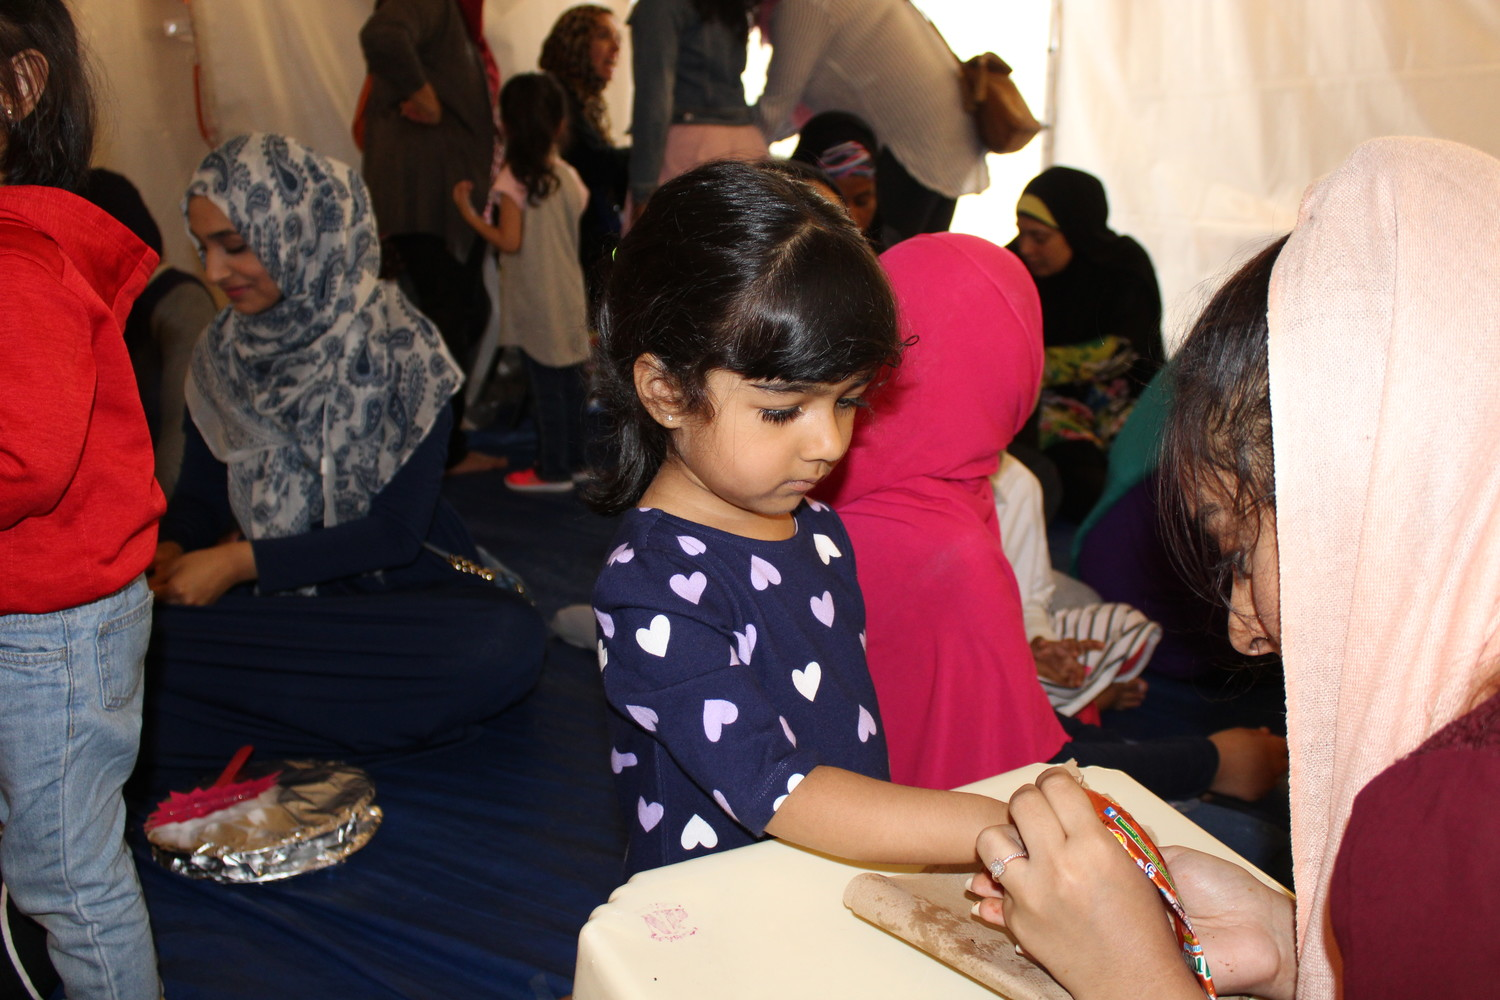 Aisha Zubair, age 3½, got a henna tattoo at Masjid Hamza in Valley Stream as part of the mosque's weeklong Eid ul-Fitr celebrations.